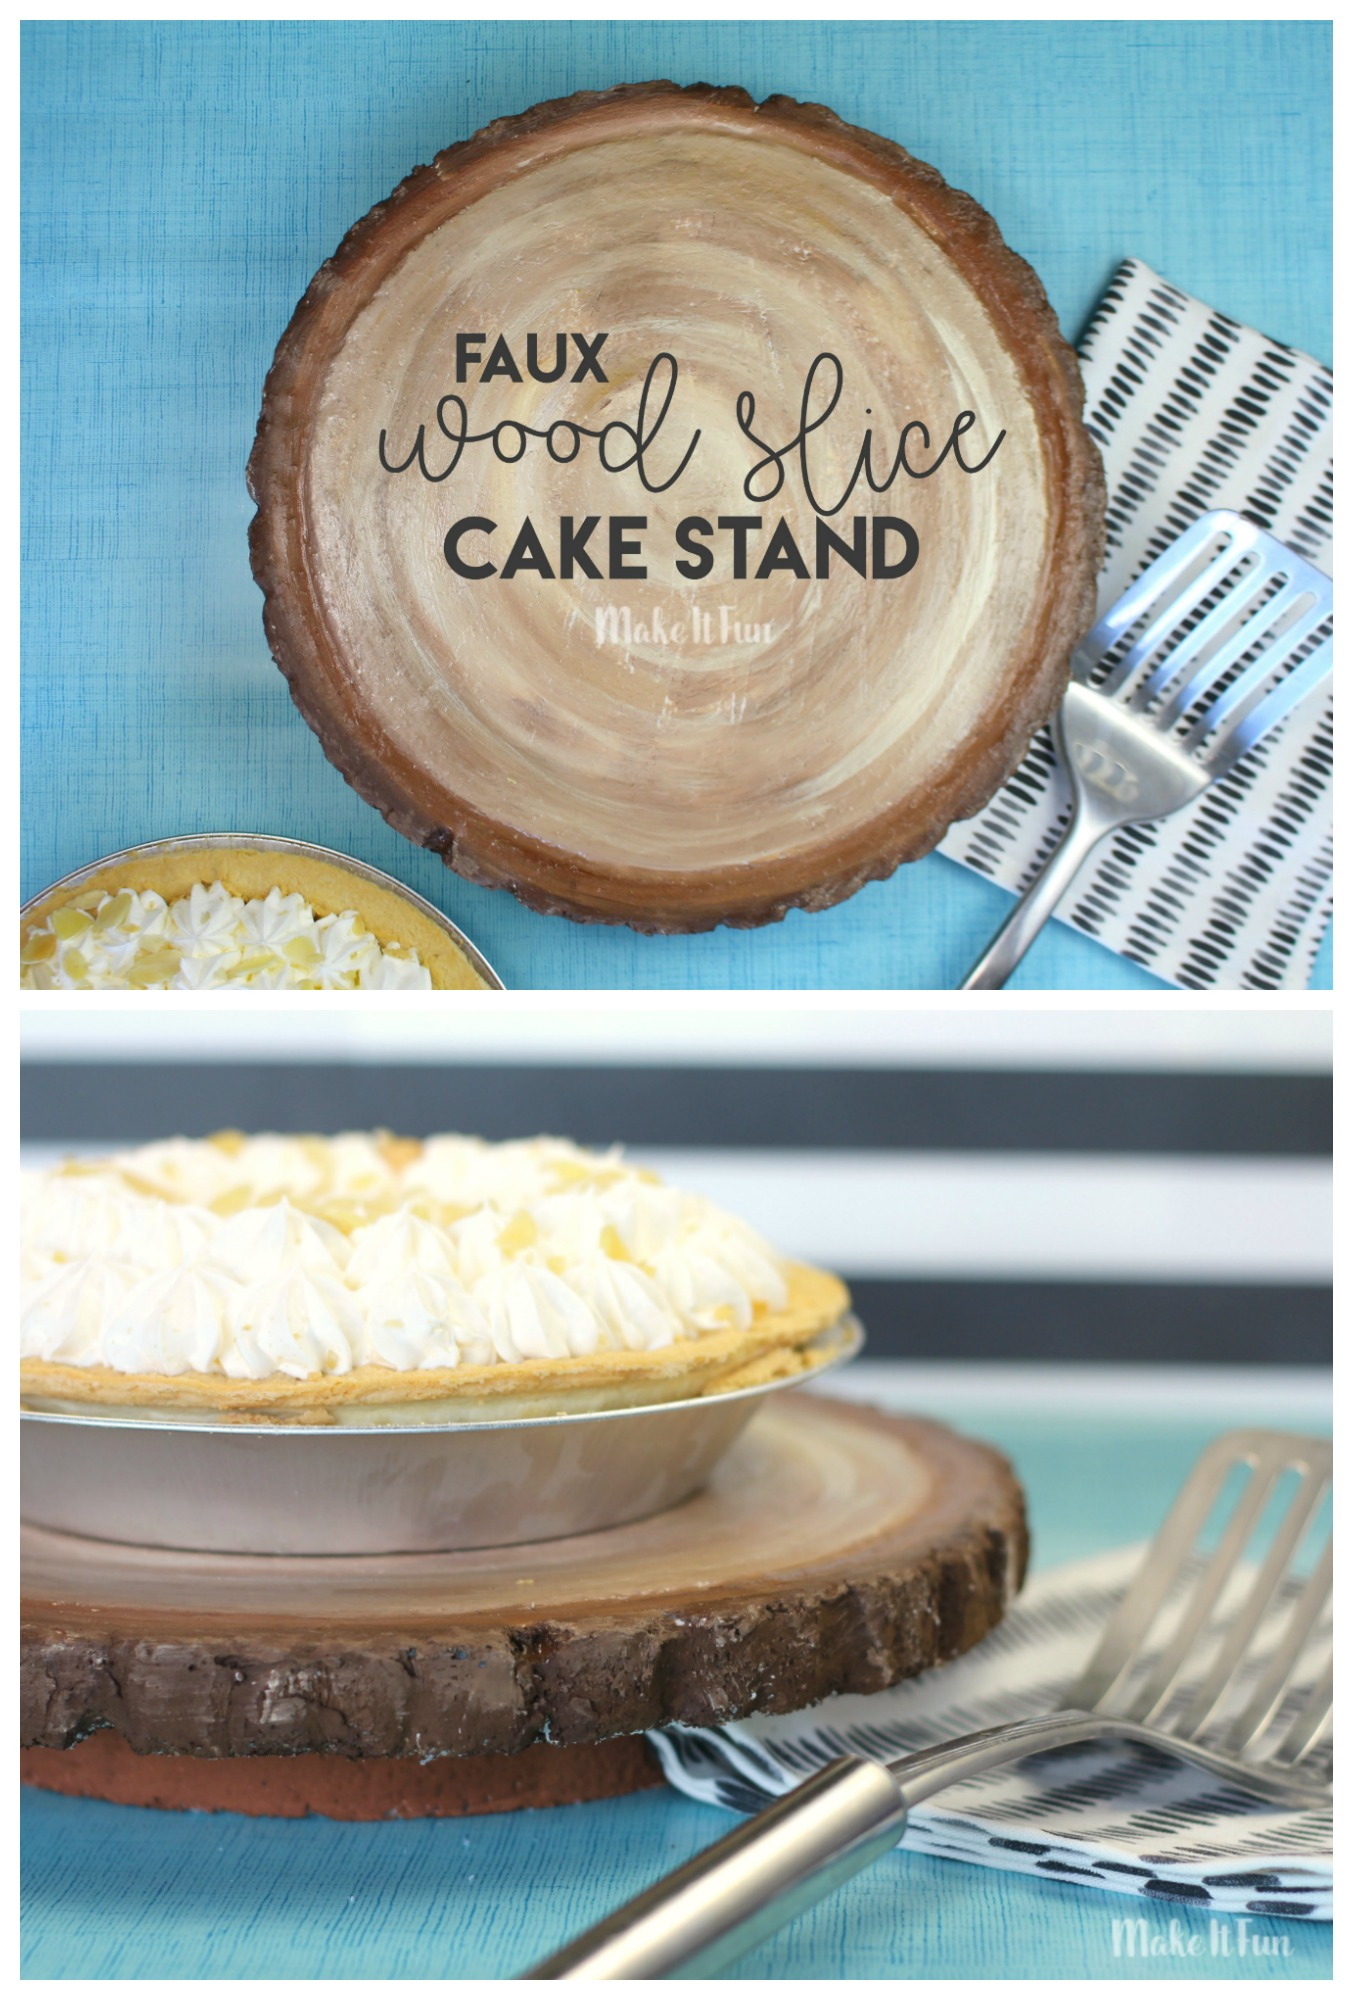 diy-this-super-easy-faux-wood-slice-cake-or-pie-stand-make-it-fun-crafts